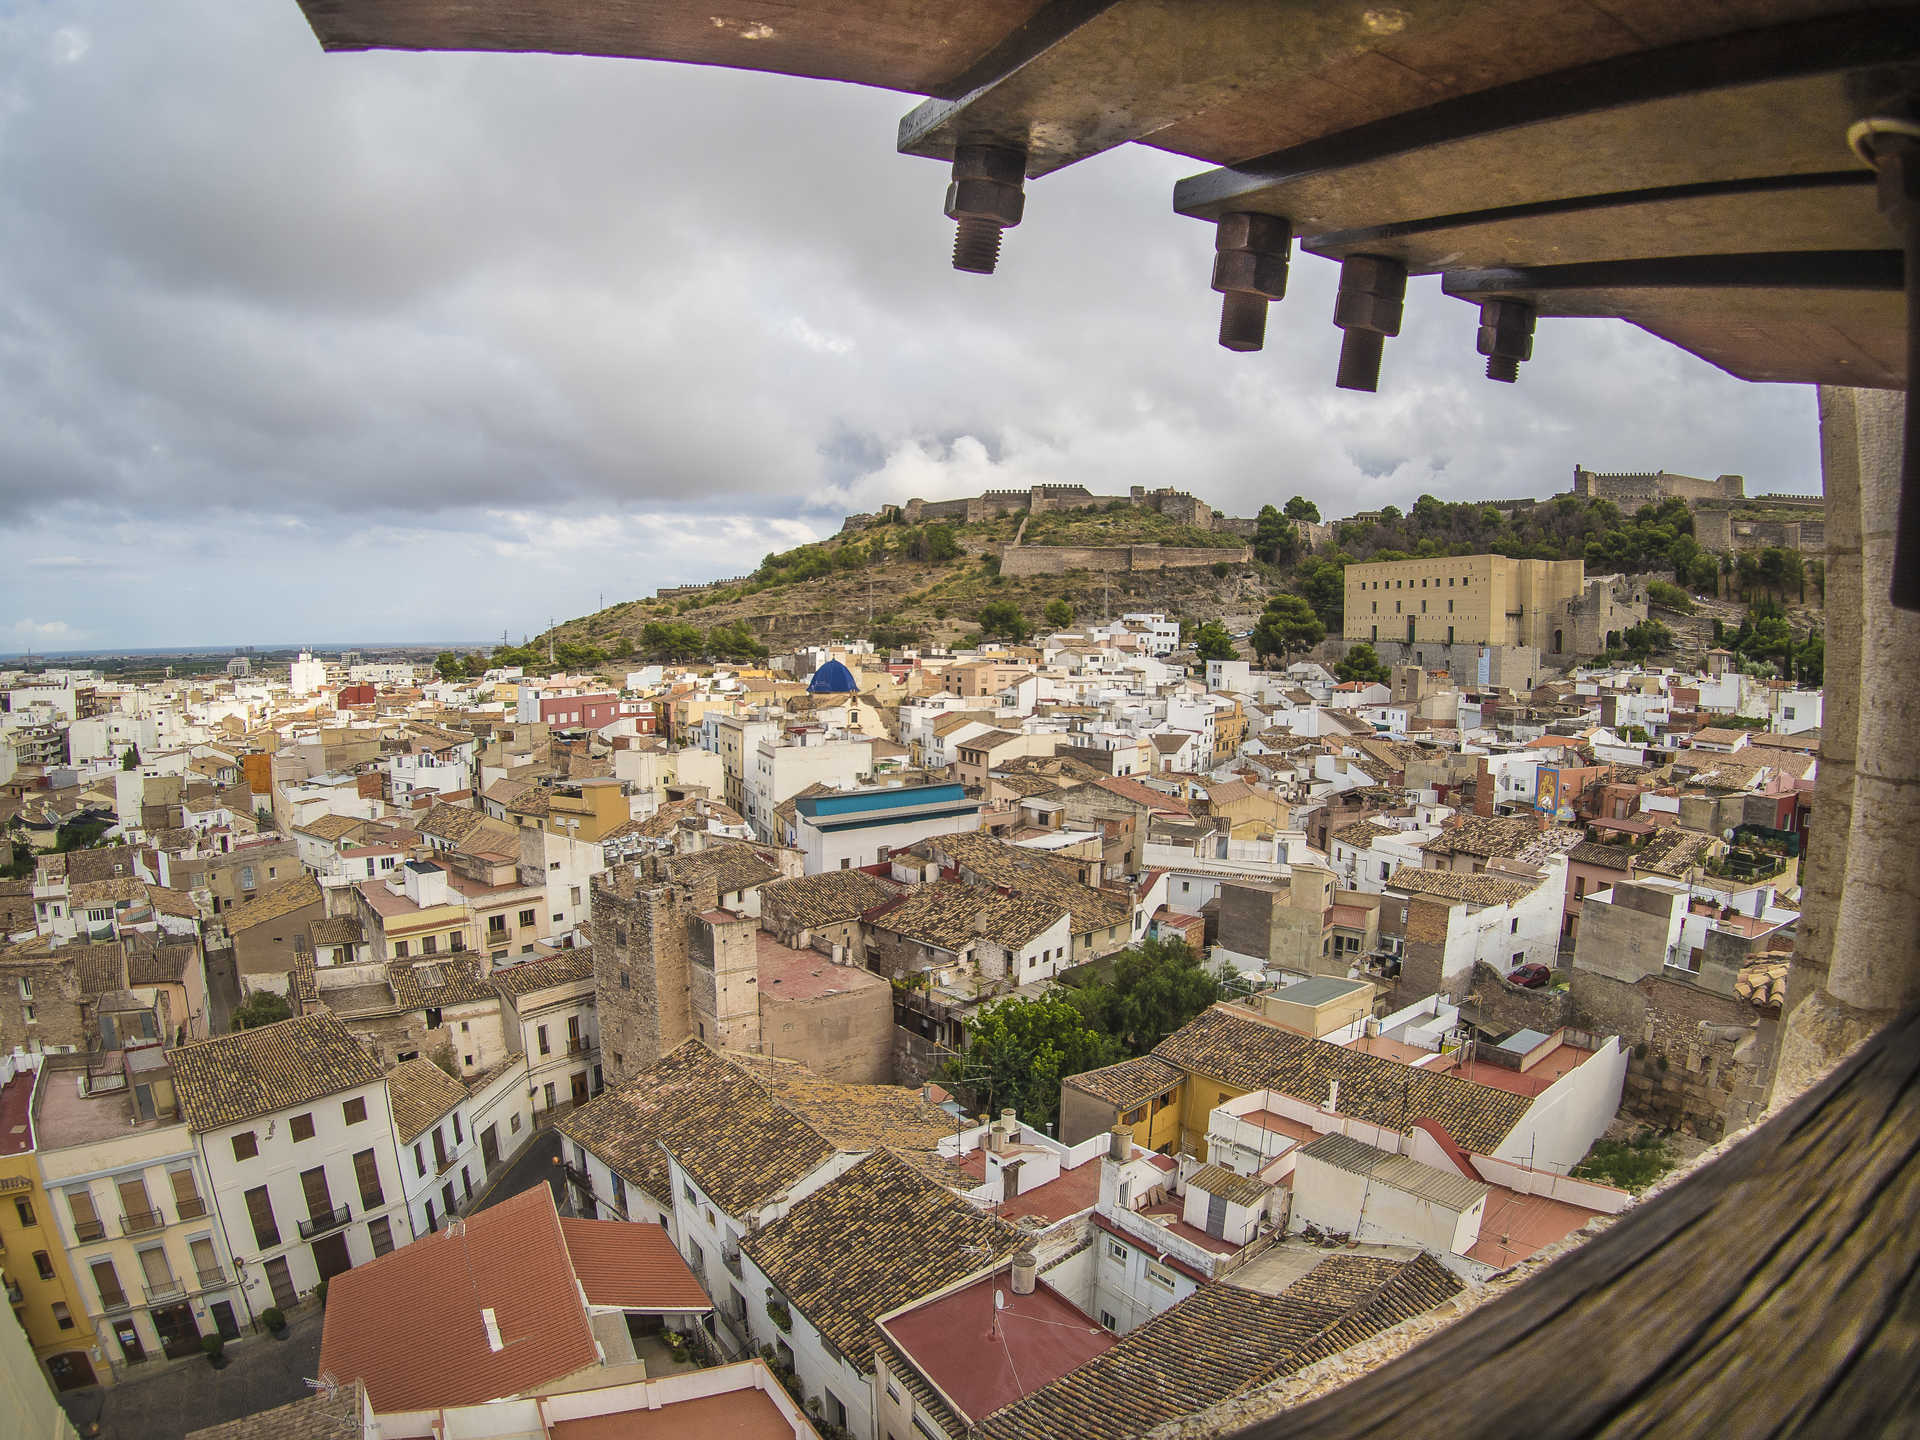 La Villa de Sagunto (old town: Judería, plaza Mayor and Calvario)